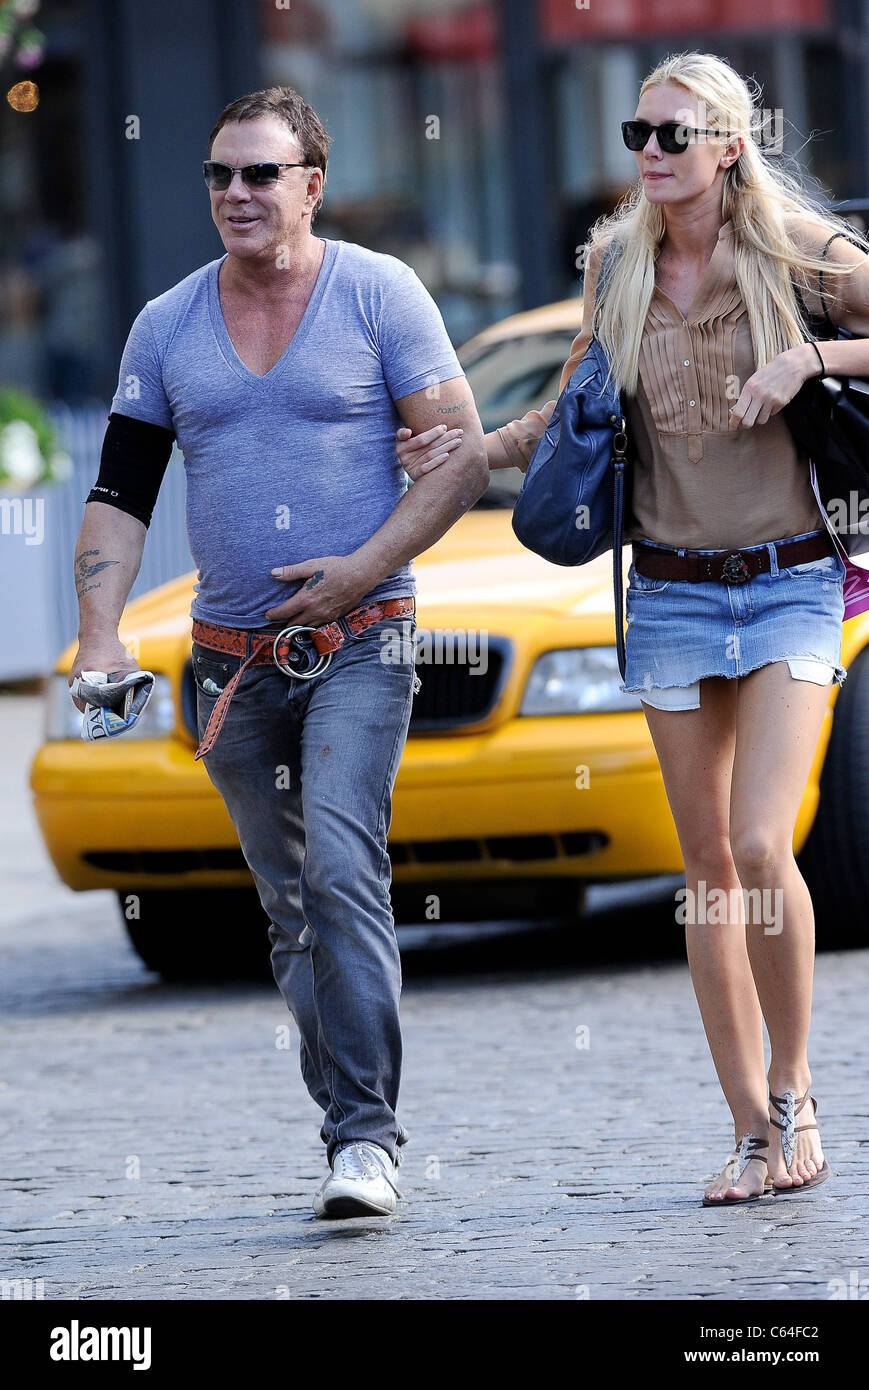 Mickey Rourke Anastassija Makarenko Walk In The Meatpacking Stock Photo Alamy Mickey rourke and anastassija makarenko at the expendables premiere at grauman's chinese theatre in hollywood,ca usa. https www alamy com stock photo mickey rourke anastassija makarenko walk in the meatpacking district 38208578 html